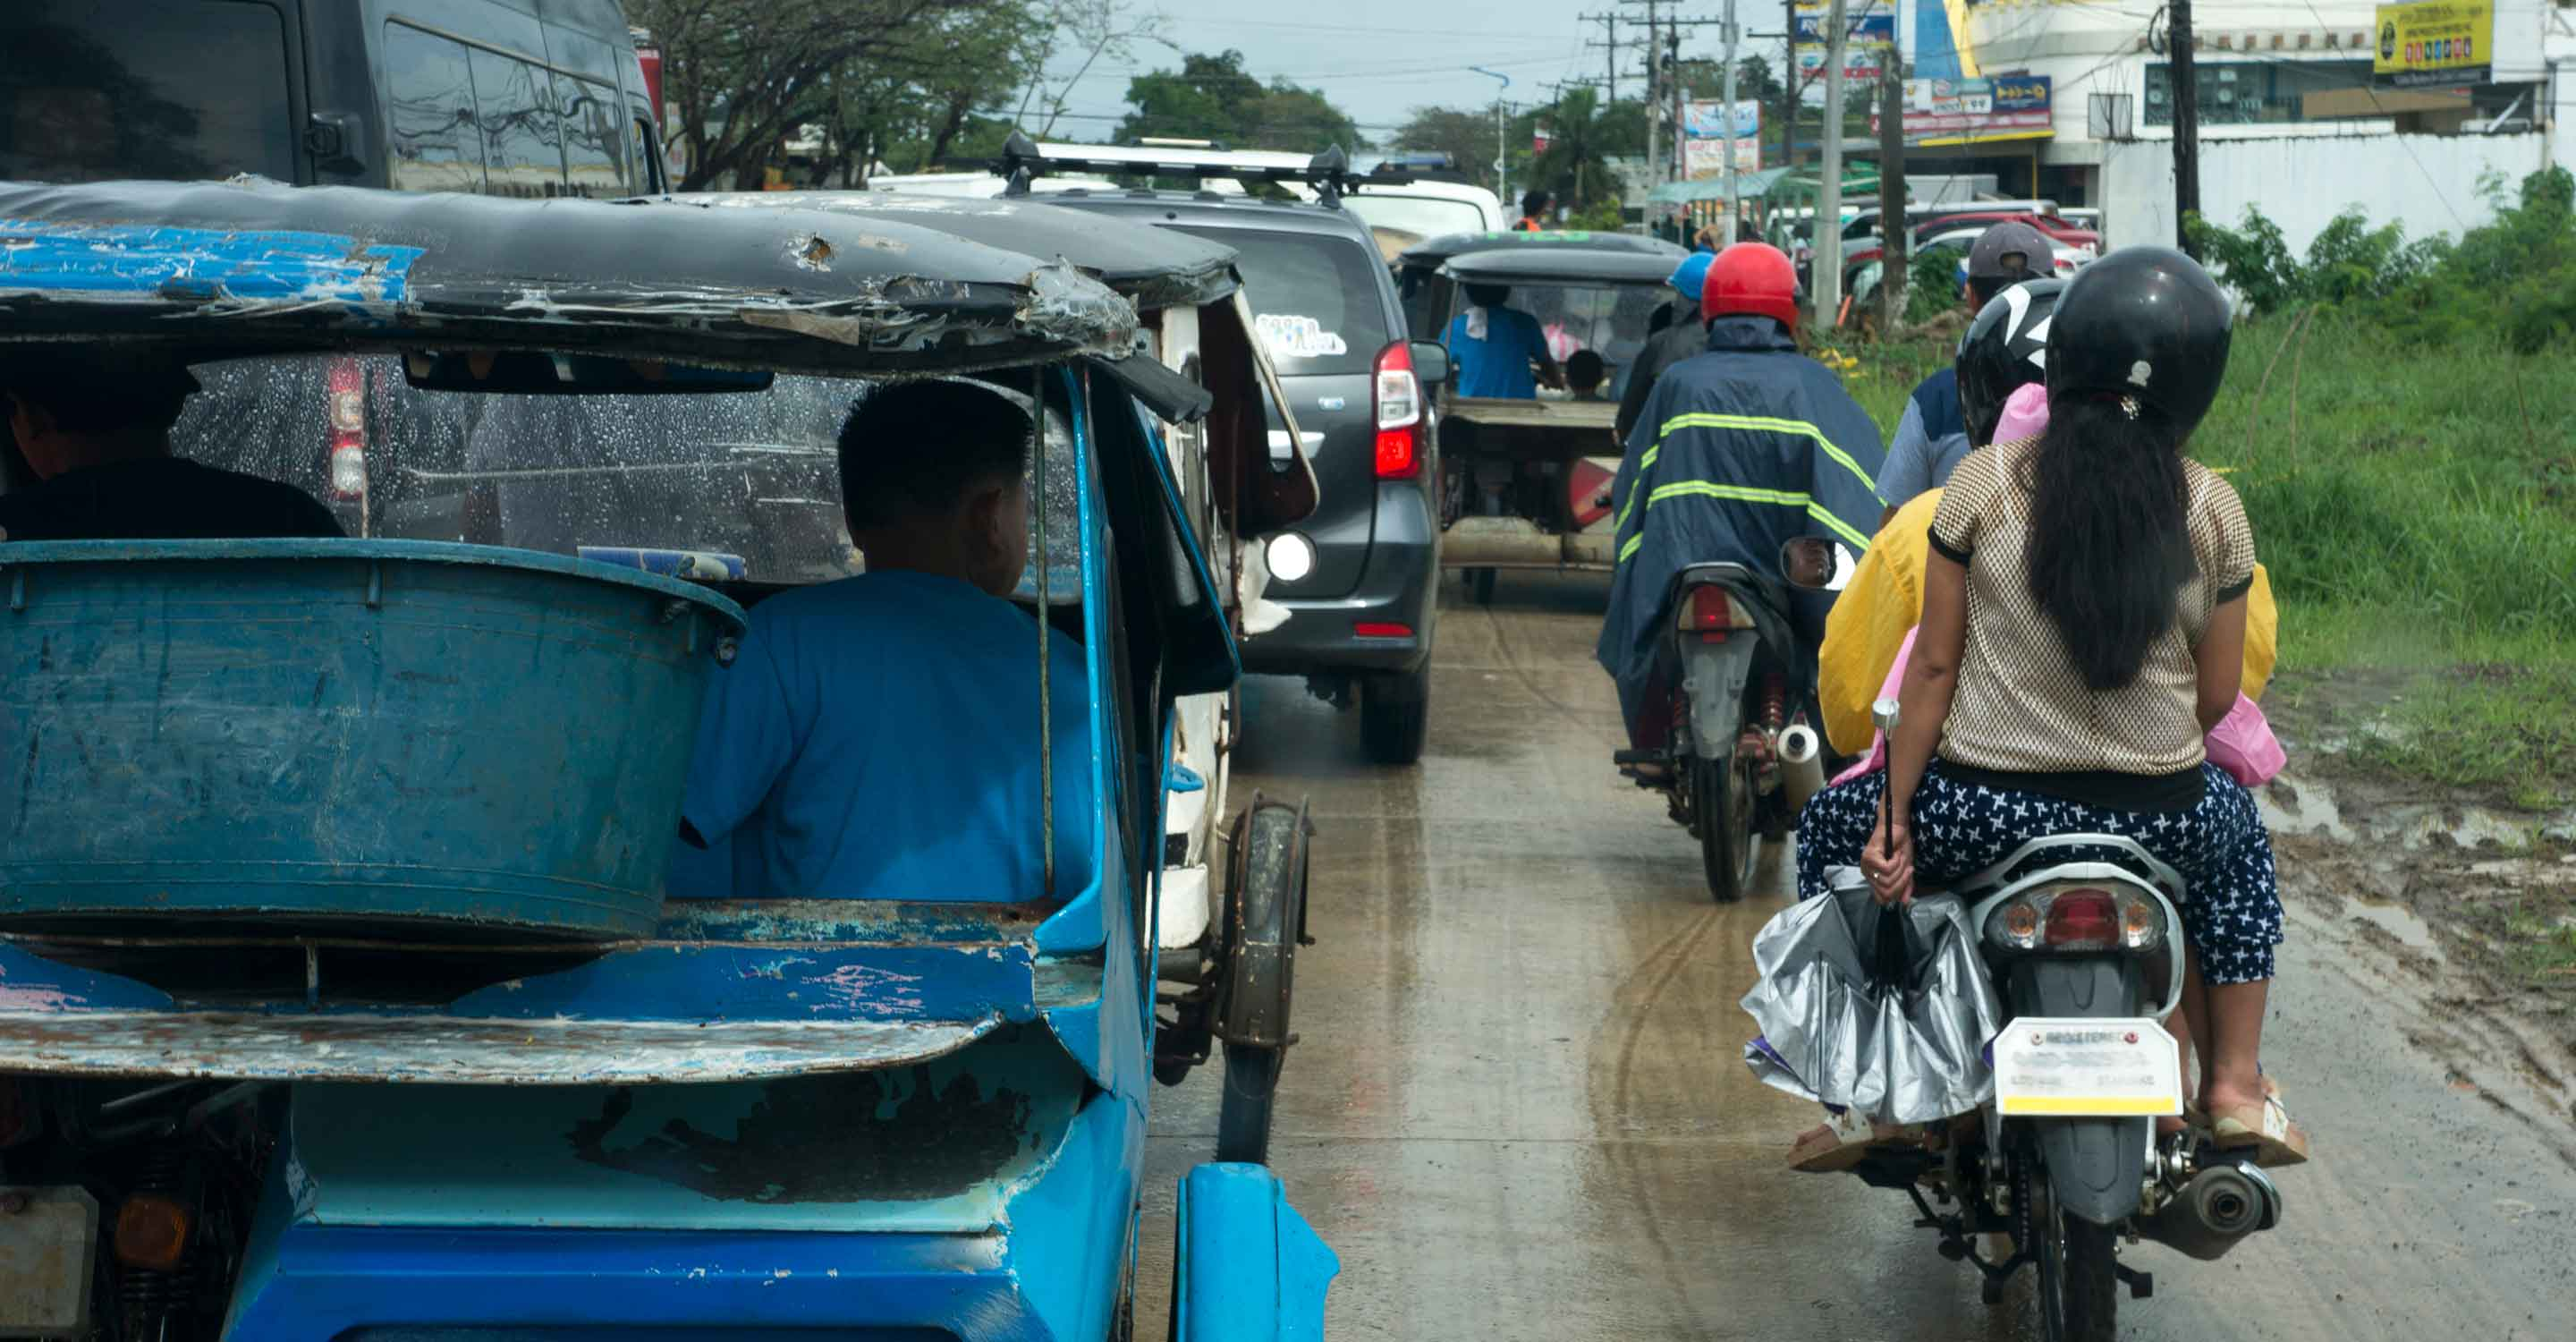 Filipino/a drivers on motorcycles and in cars on a wet, congested road in what is ostensibly the Philippines.